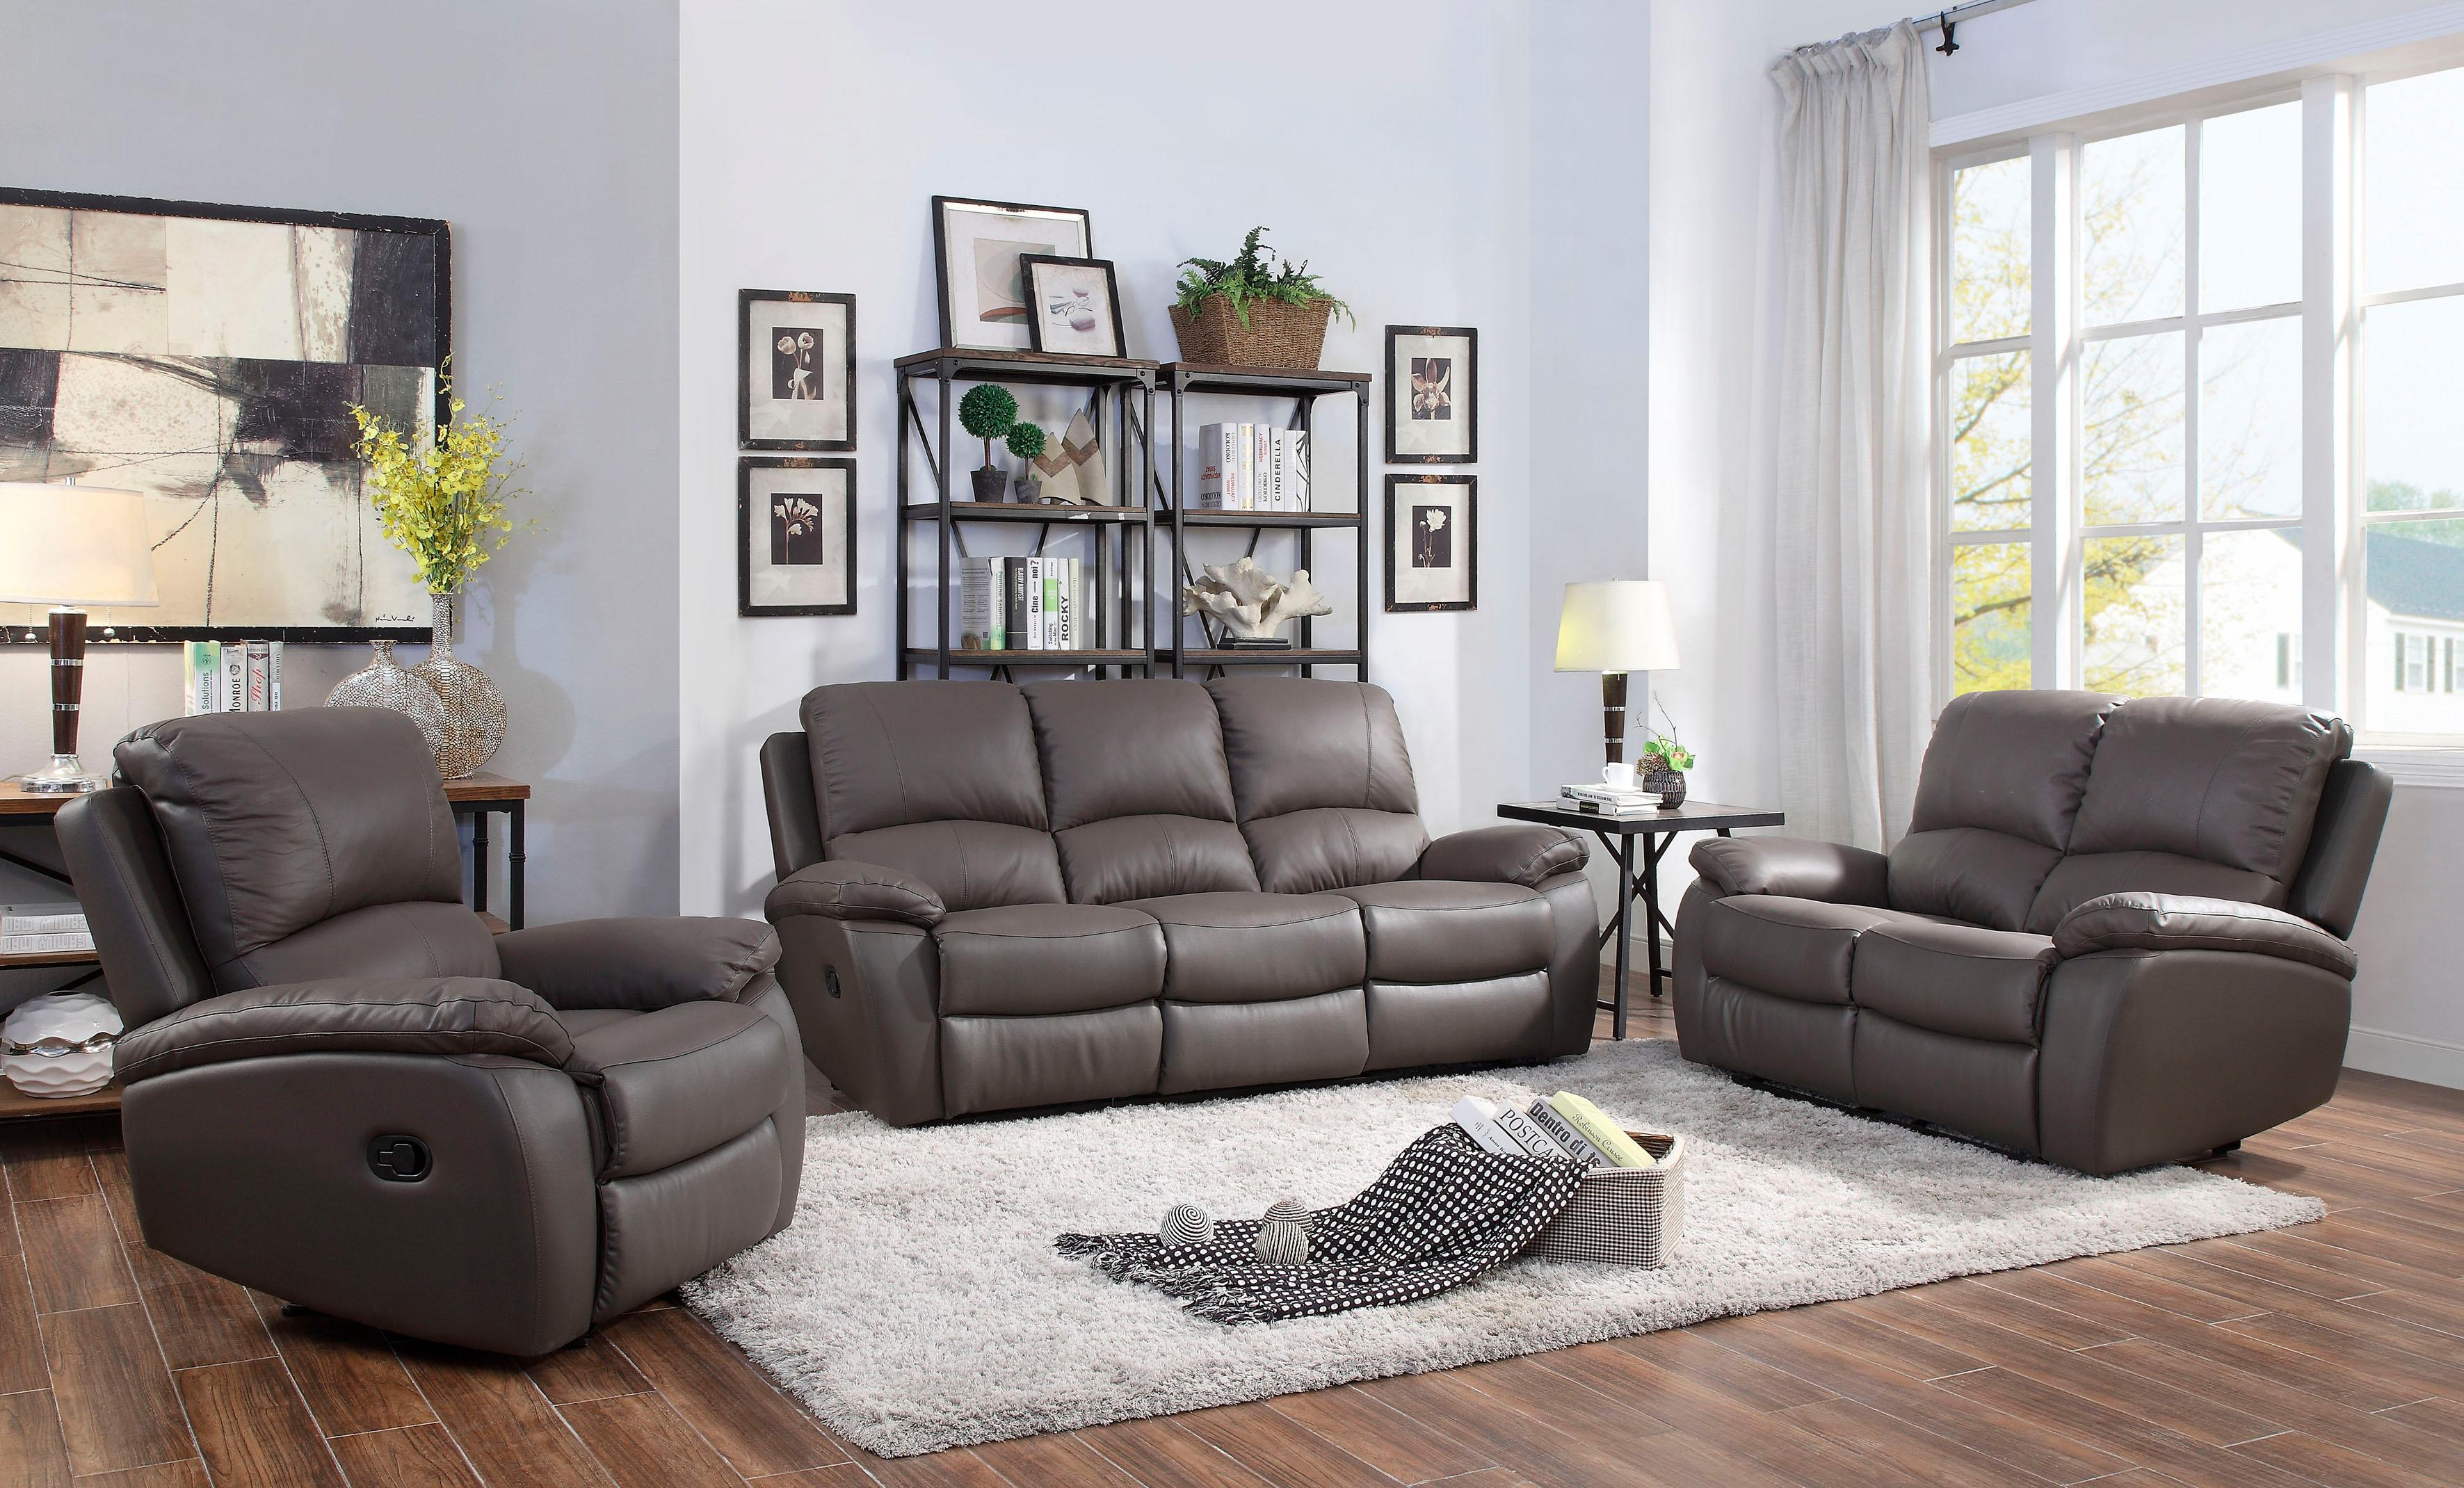 Image of ATLANTIC home collection 2-Sitzer